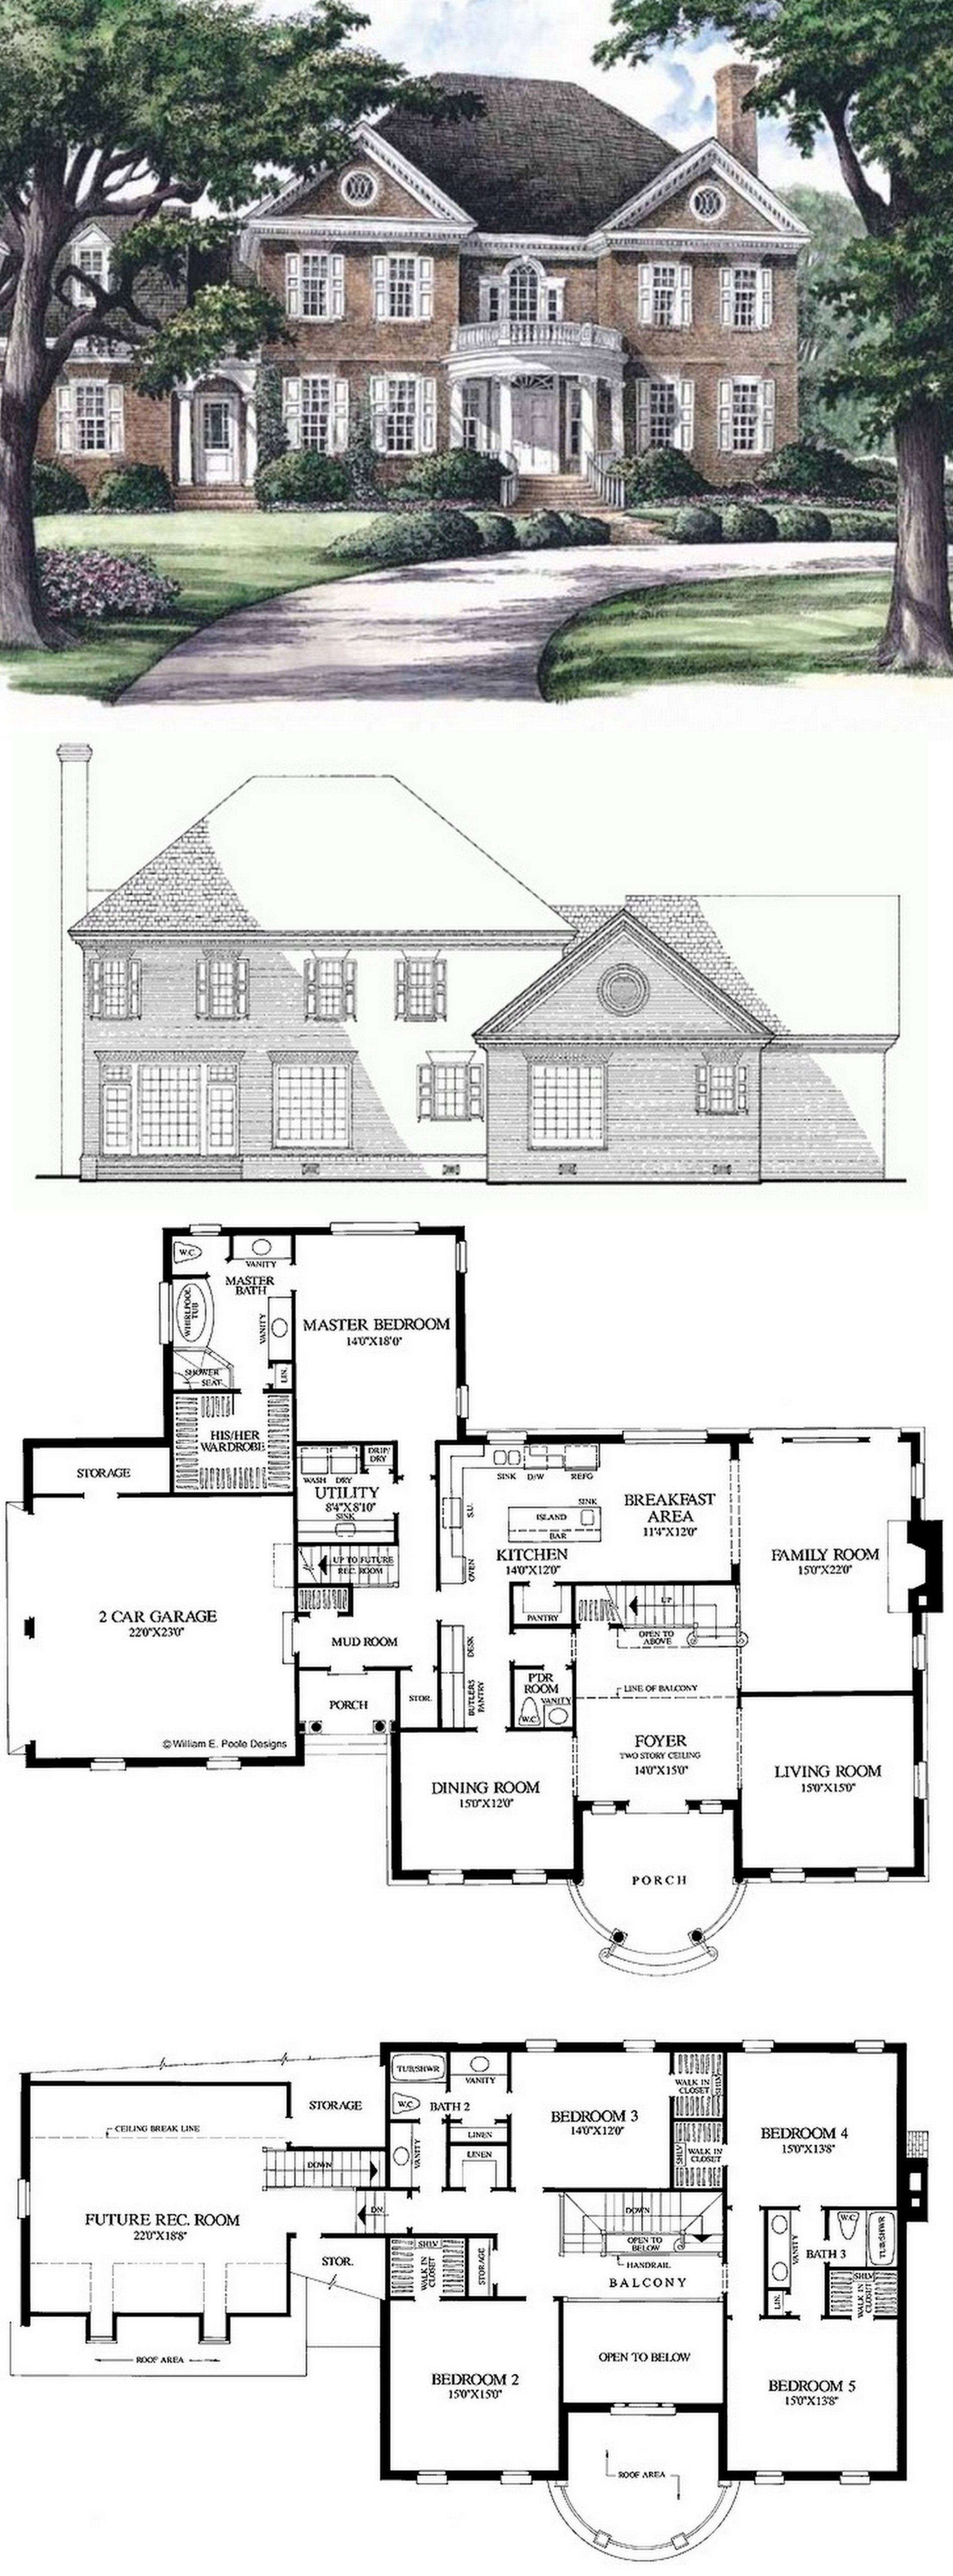 Southern Style House Plan 5 Beds 3 5 Baths 3951 Sq Ft Plan 137 139 Sims House Plans Georgian Homes House Plans